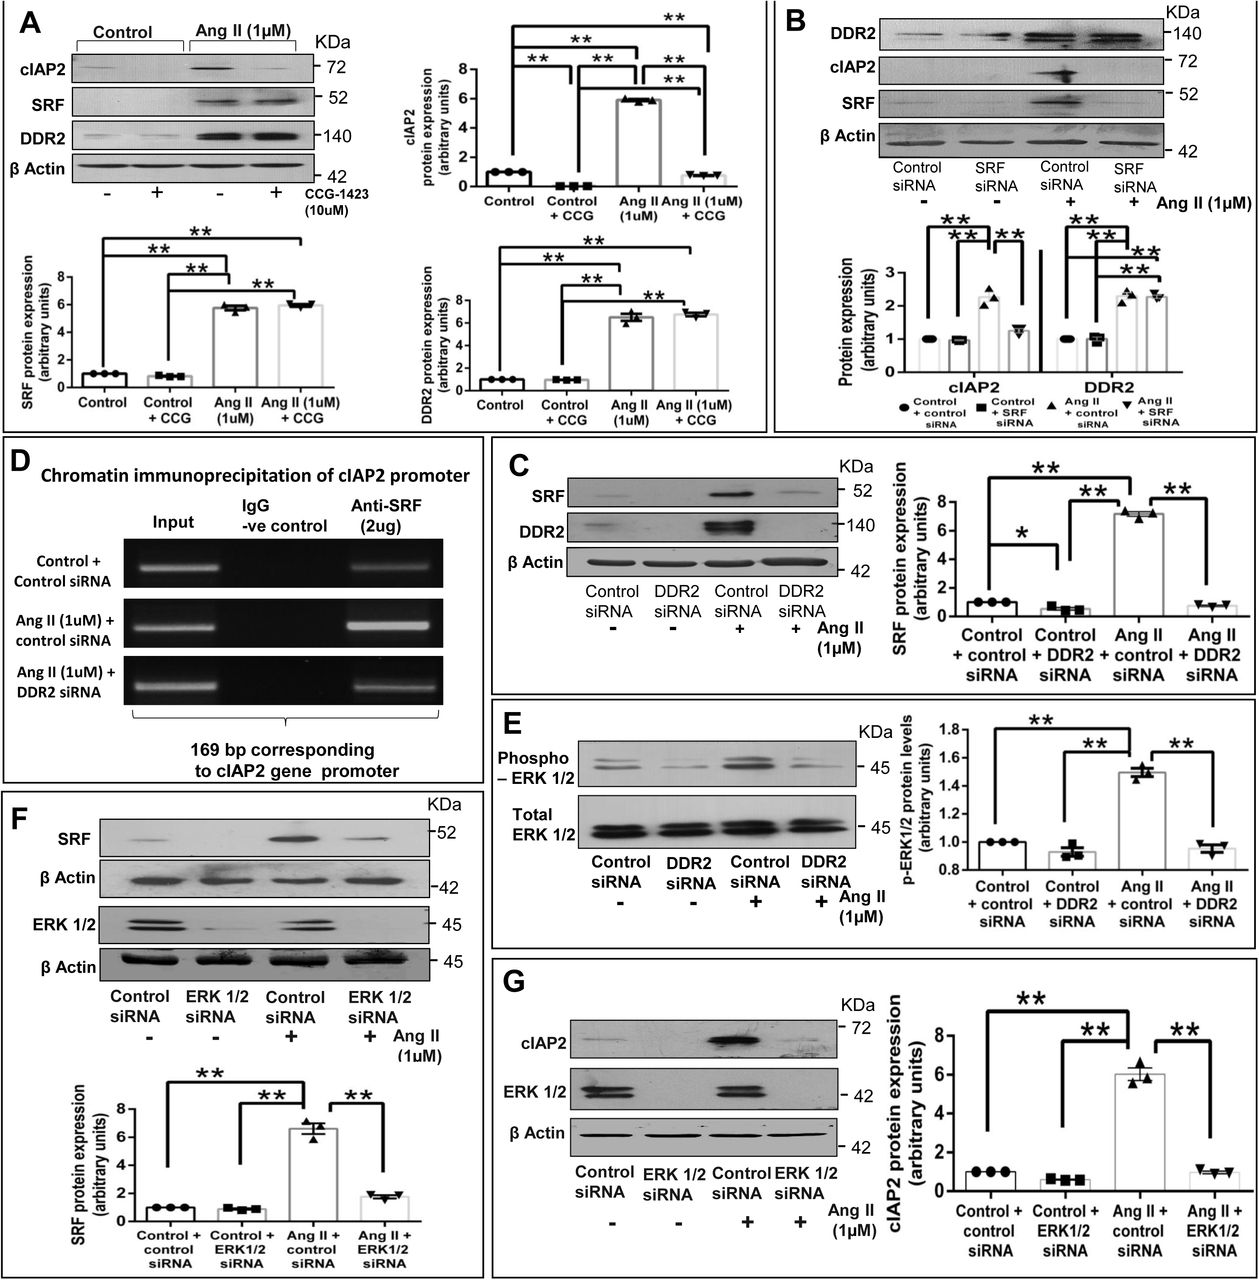 DDR2-dependent ERK1/2 MAPK activation acts via SRF to transcriptionally upregulate cIAP2 expression in Ang II-stimulated cardiac fibroblasts. ( A ) Sub-confluent quiescent cultures of cardiac fibroblasts were pre-treated with CCG-1423(10μM) for 45 min prior to treatment with Ang II (1μM) for 12h. cIAP2, SRF and DDR2 protein expression was examined by western blot analysis, with β-actin as loading control. Significance was determined by two-way ANOVA (Tukey's multiple comparisons test, **p